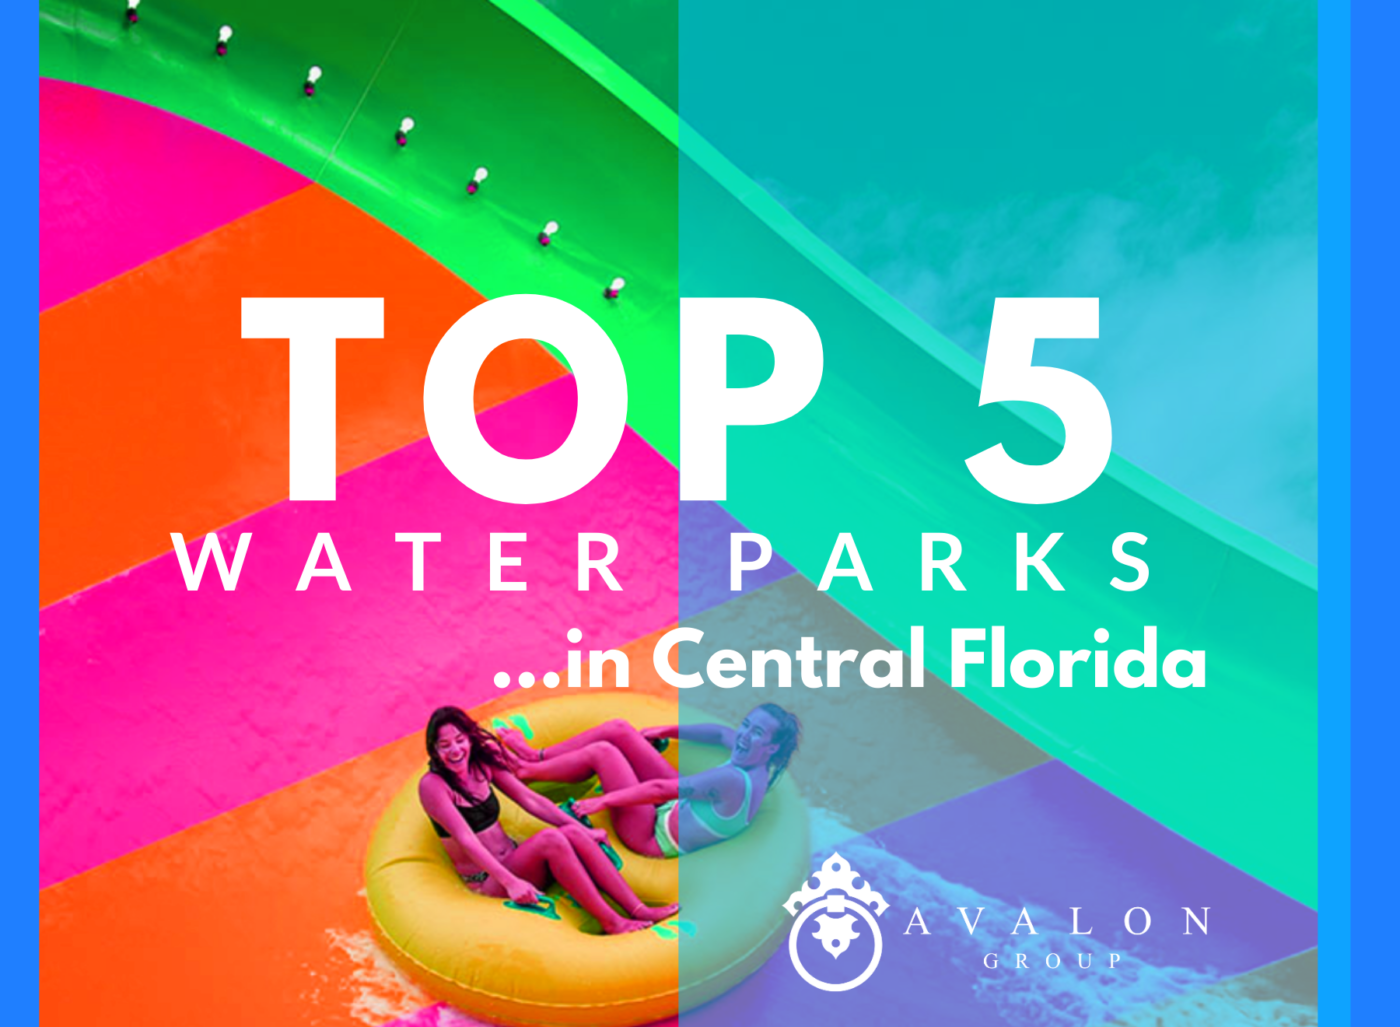 Also this is the cover picture for the article on the Top 5 Water parks in Central Florida. This text overlays the photo. Moreover, the photo has been tinted with neon colors. There are two girls in a raft on a water slide and their skin is purple.